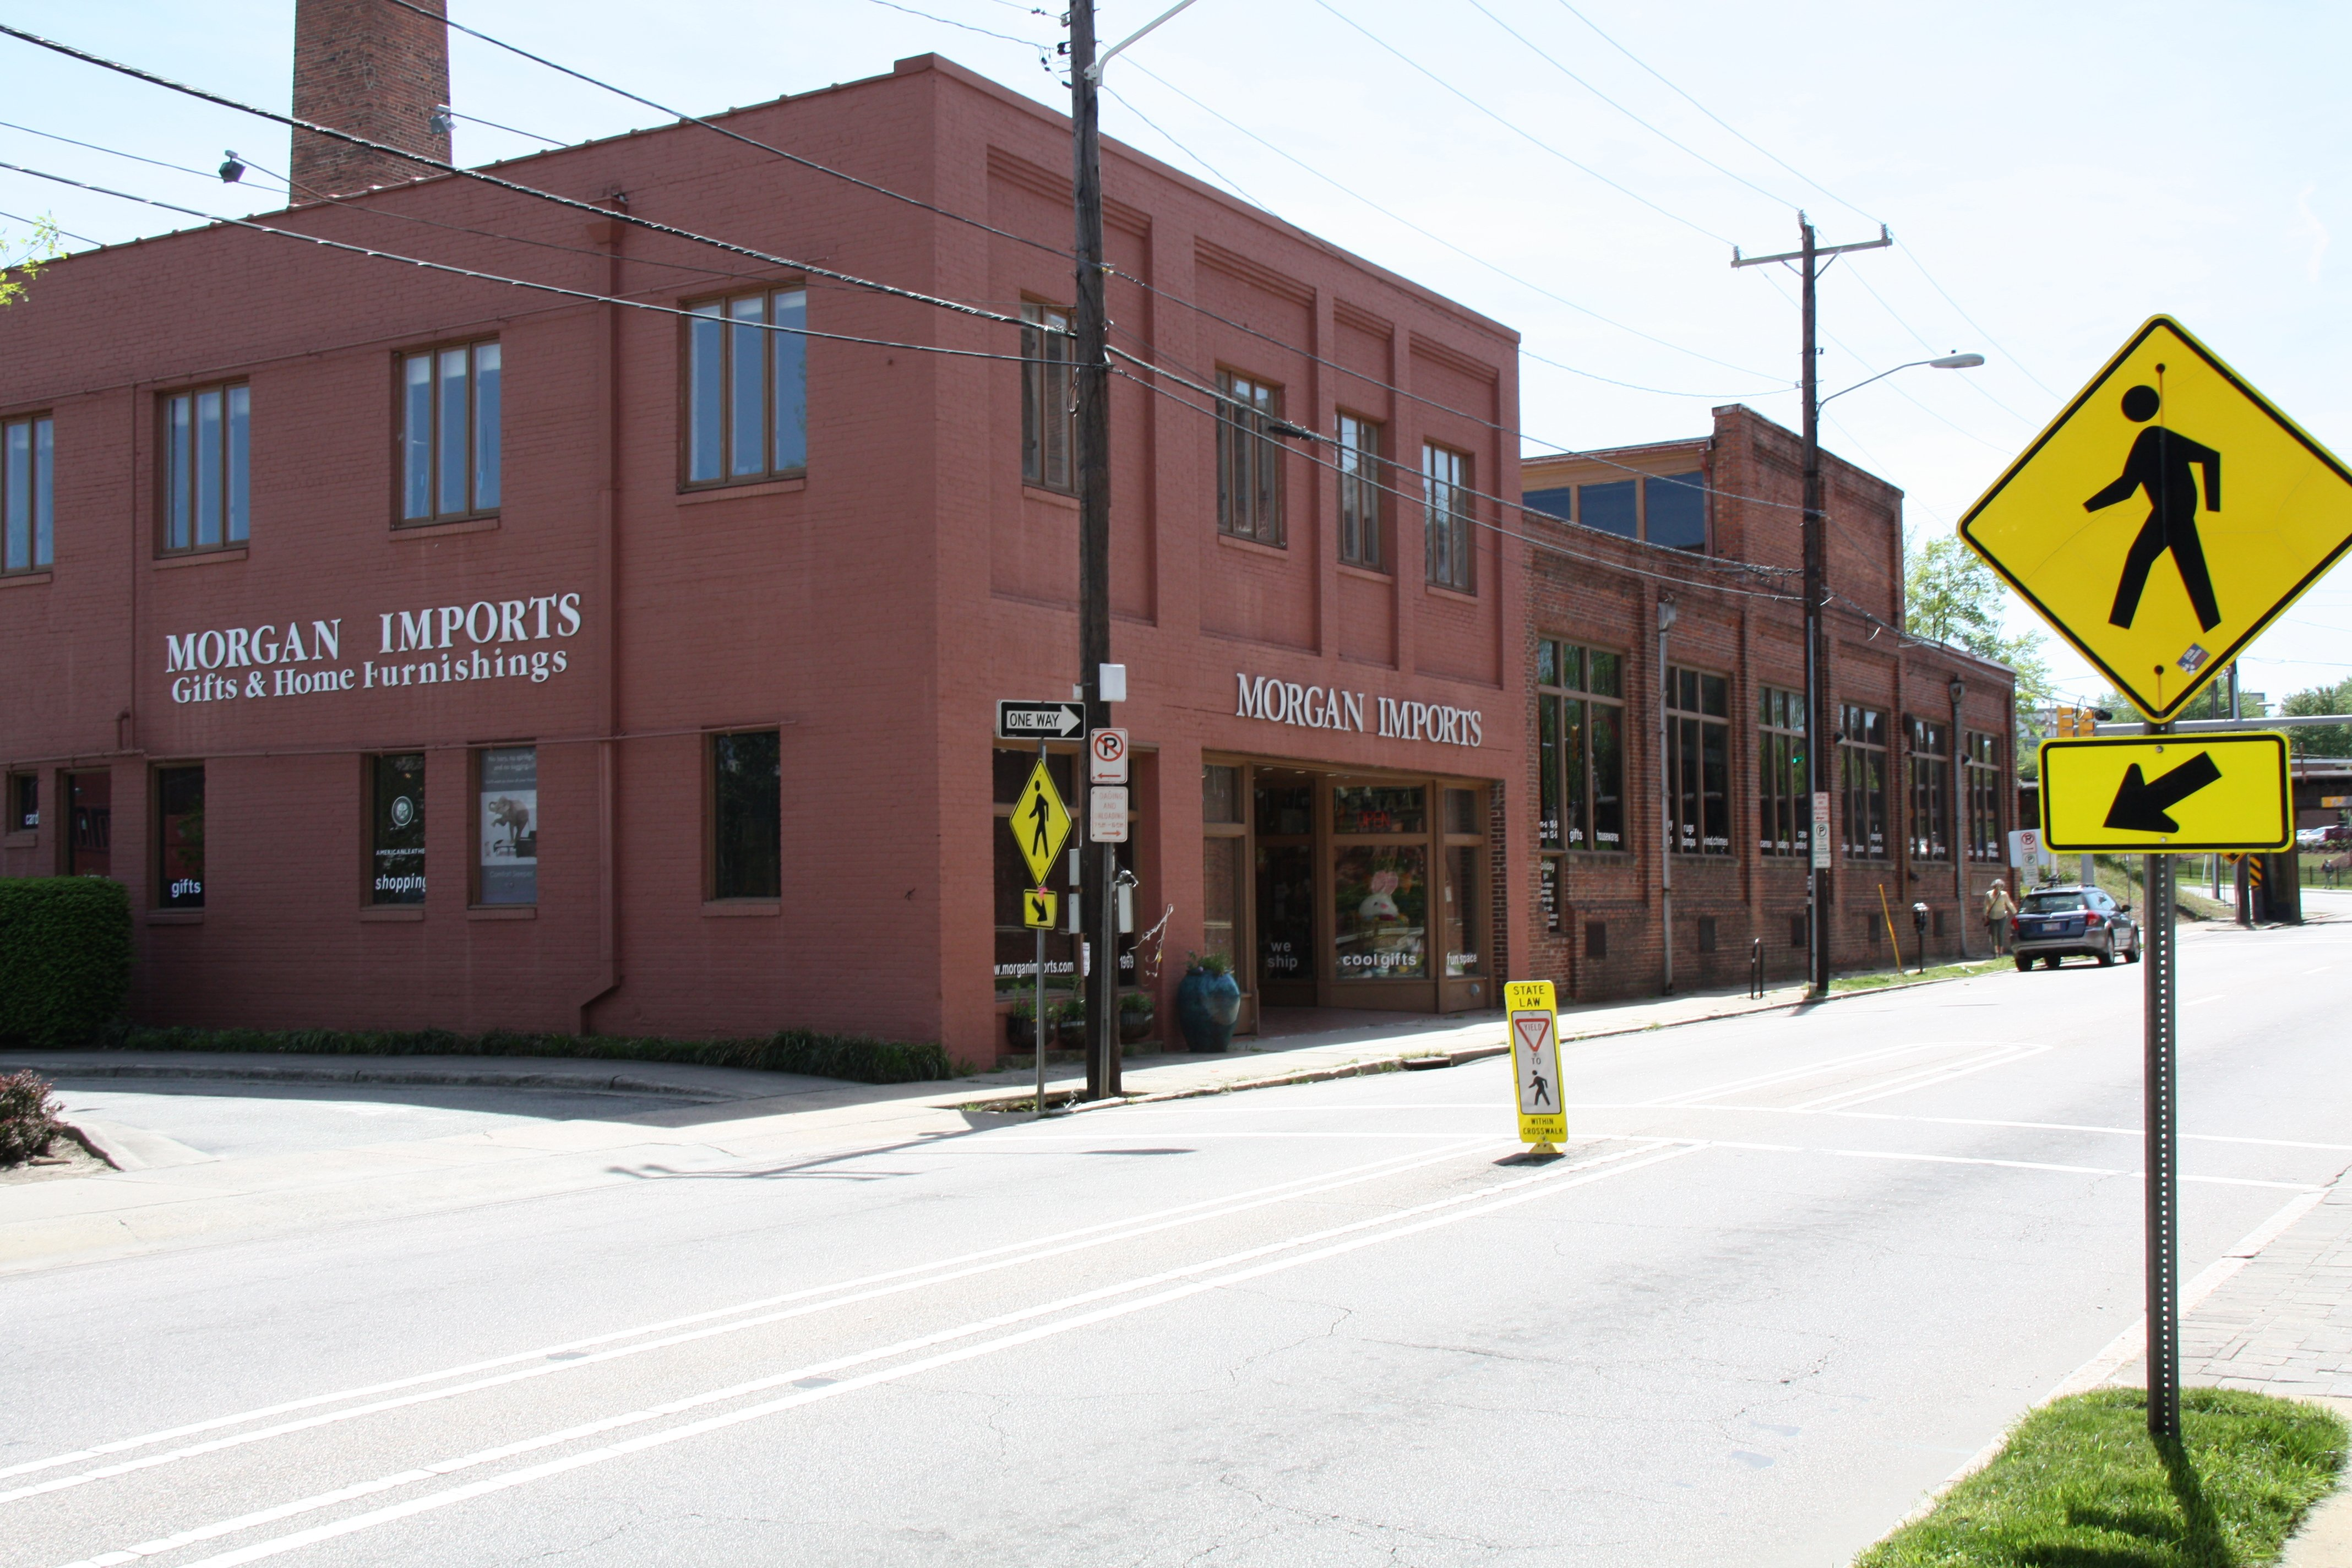 Morgan Imports Will Close After 51 Years Indy Week